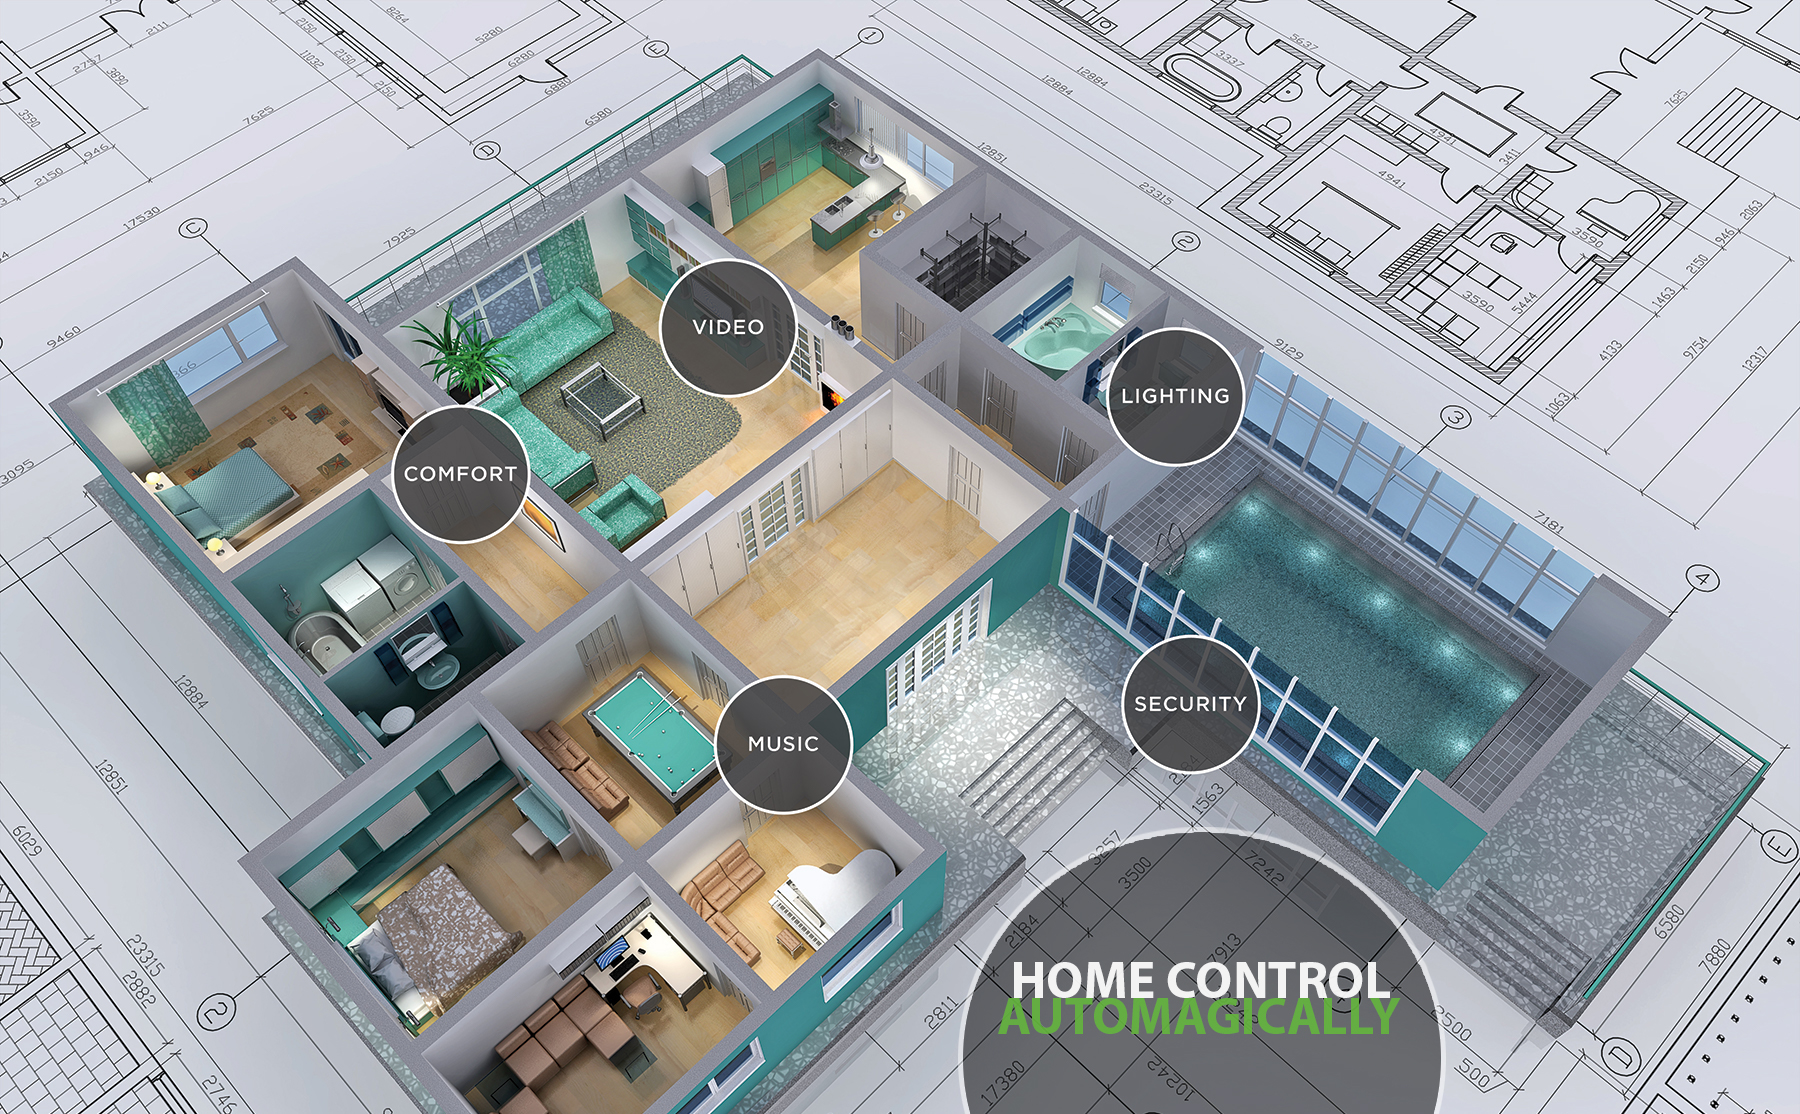 Home Control Automagically with Control4